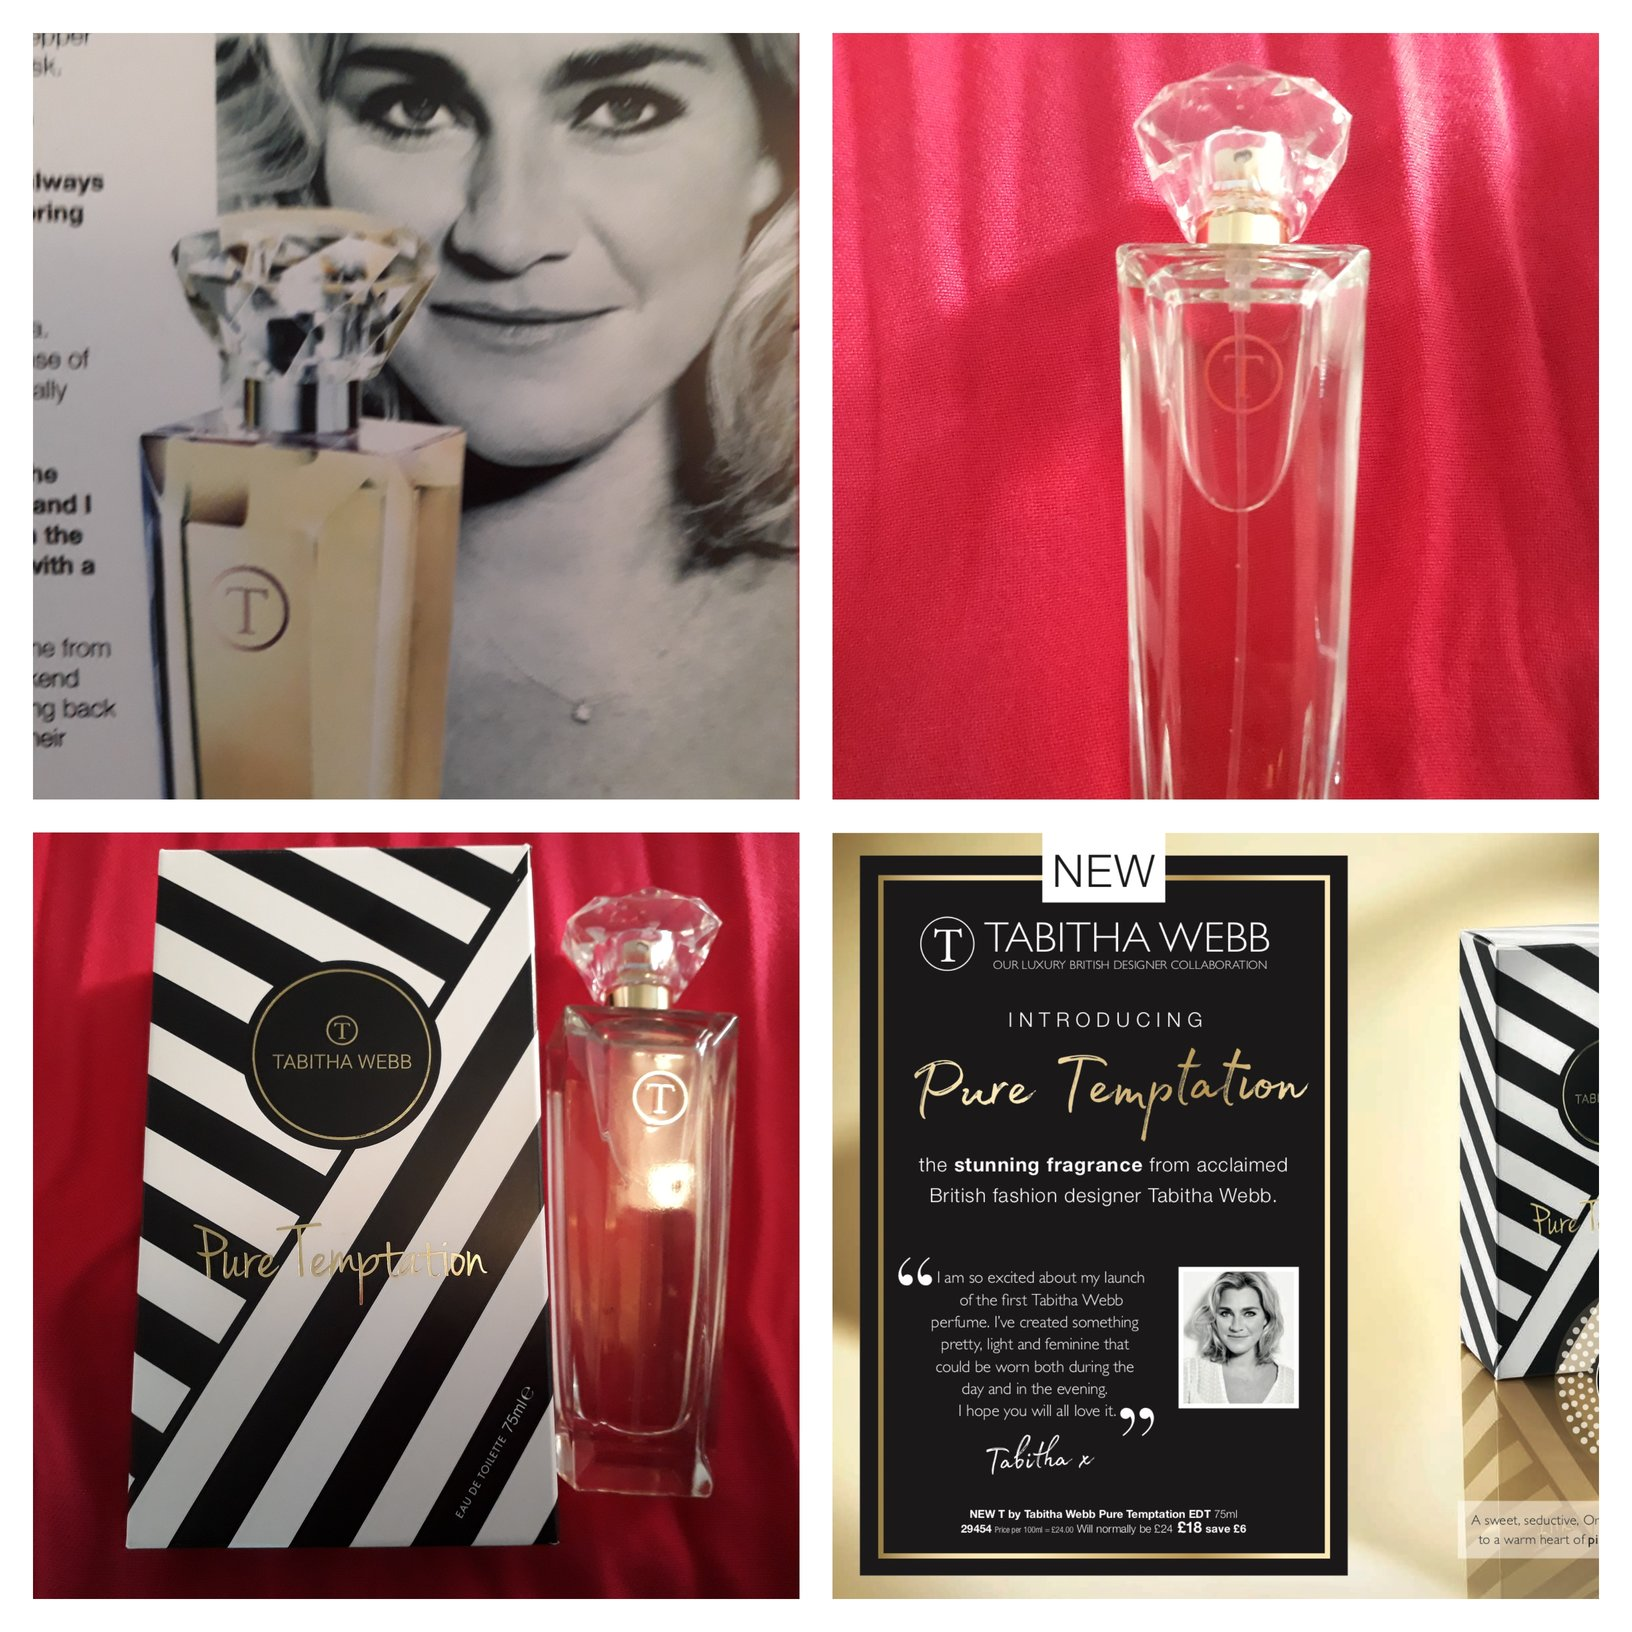 Pure Temptation By Tabitha Webb For Avon Review I Scent You A Day